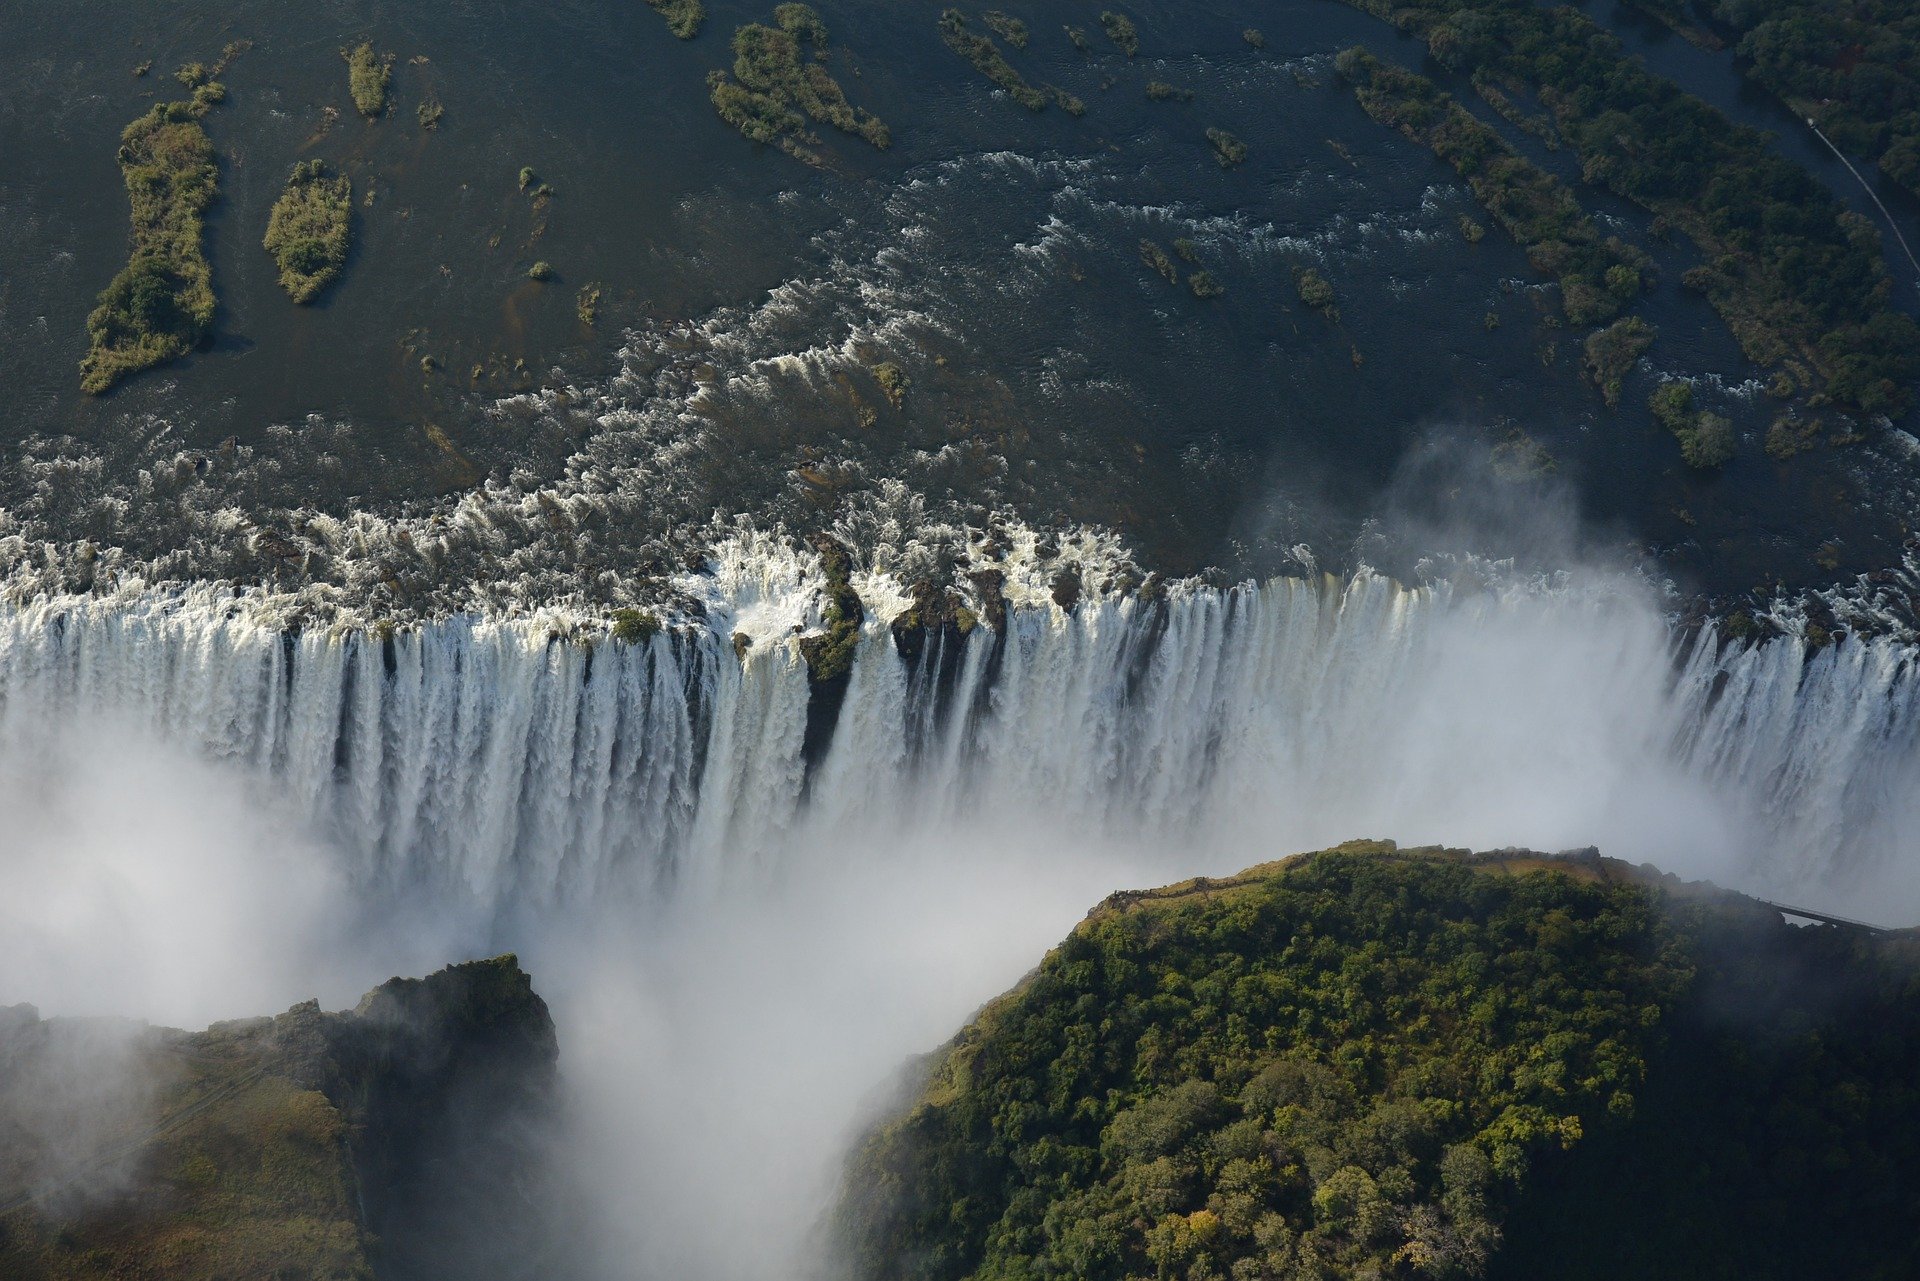 Victoria Falls in Zambia and Zimbabwe